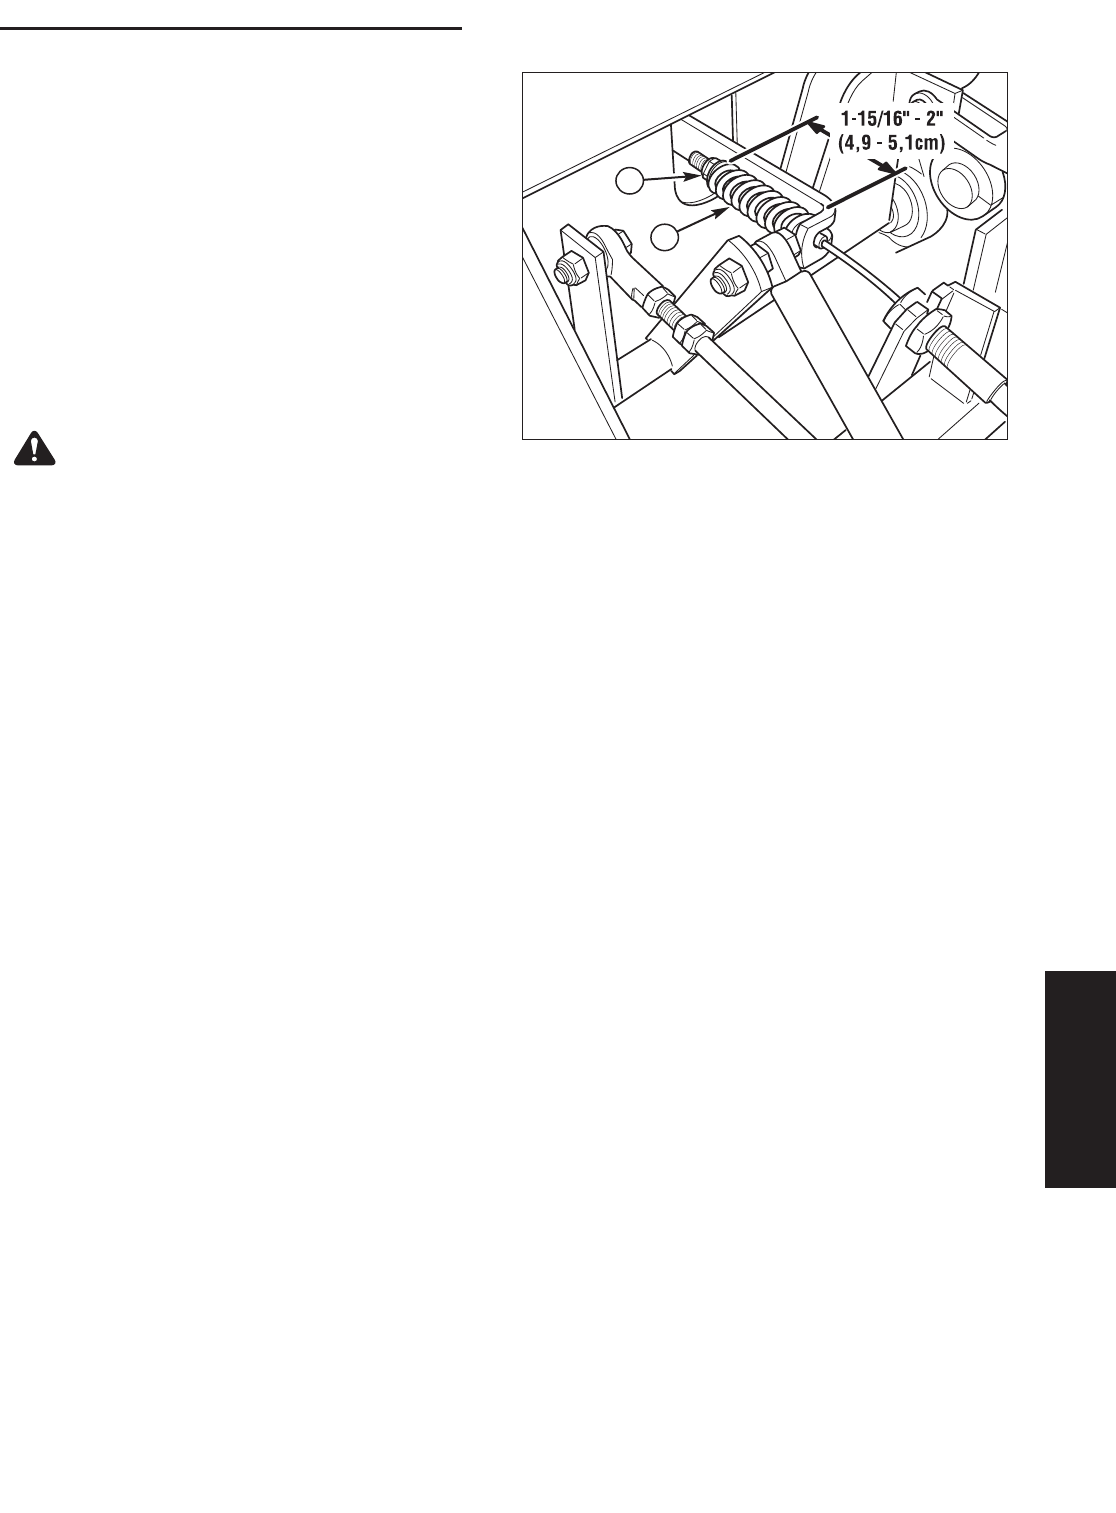 Page 41 of Ferris Industries Lawn Mower 5900619 User Guide